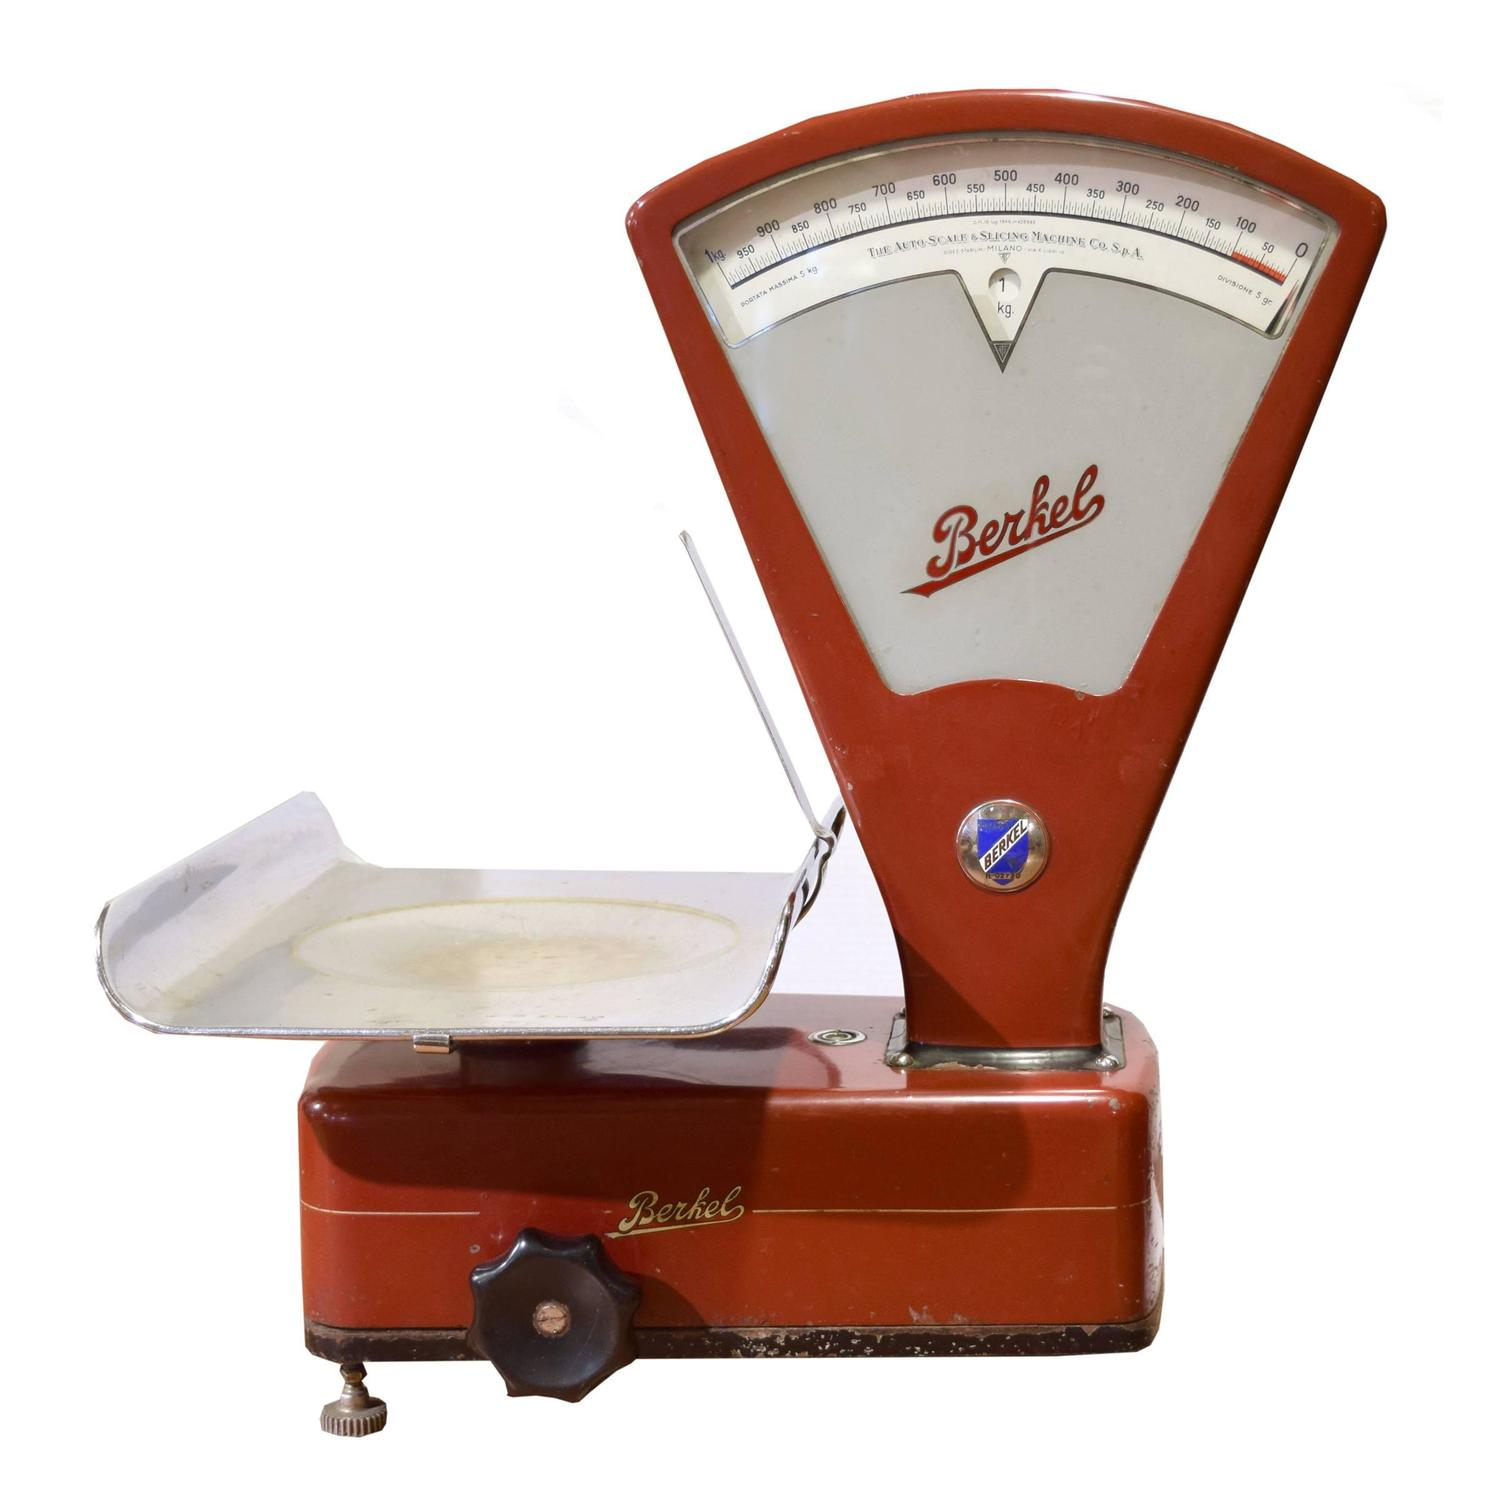 Berkel scale model nl at 1stdibs Scale model furniture